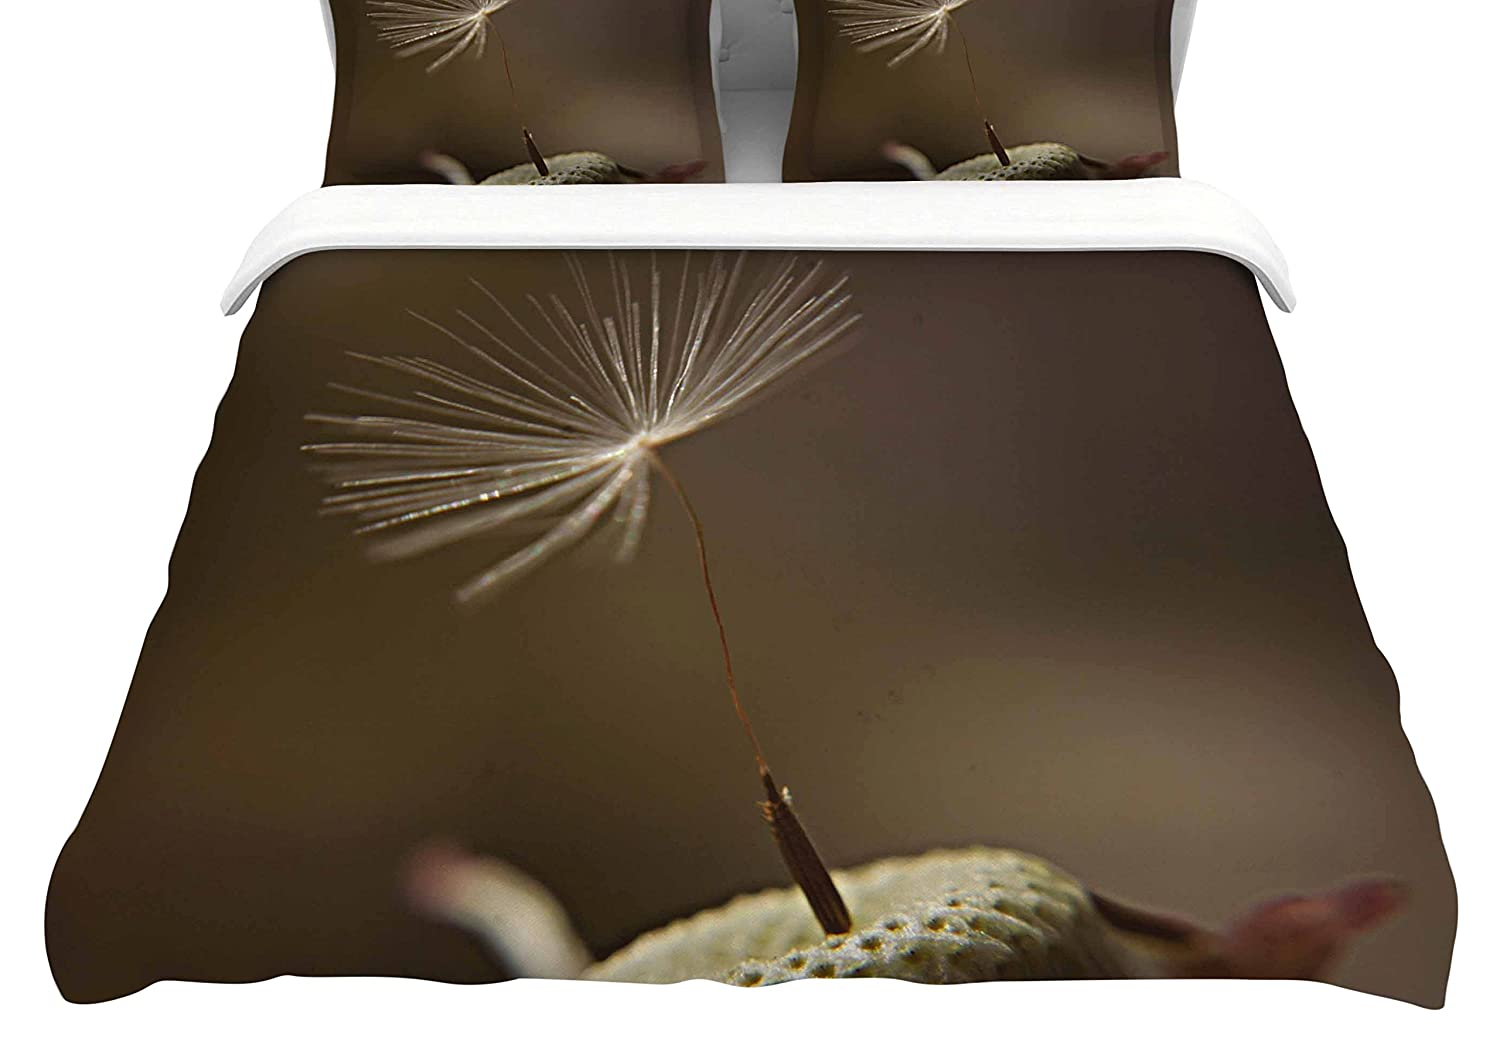 Kess InHouse Angie Turner One Wish Featherweight Queen Duvet Cover, 88 x 88,